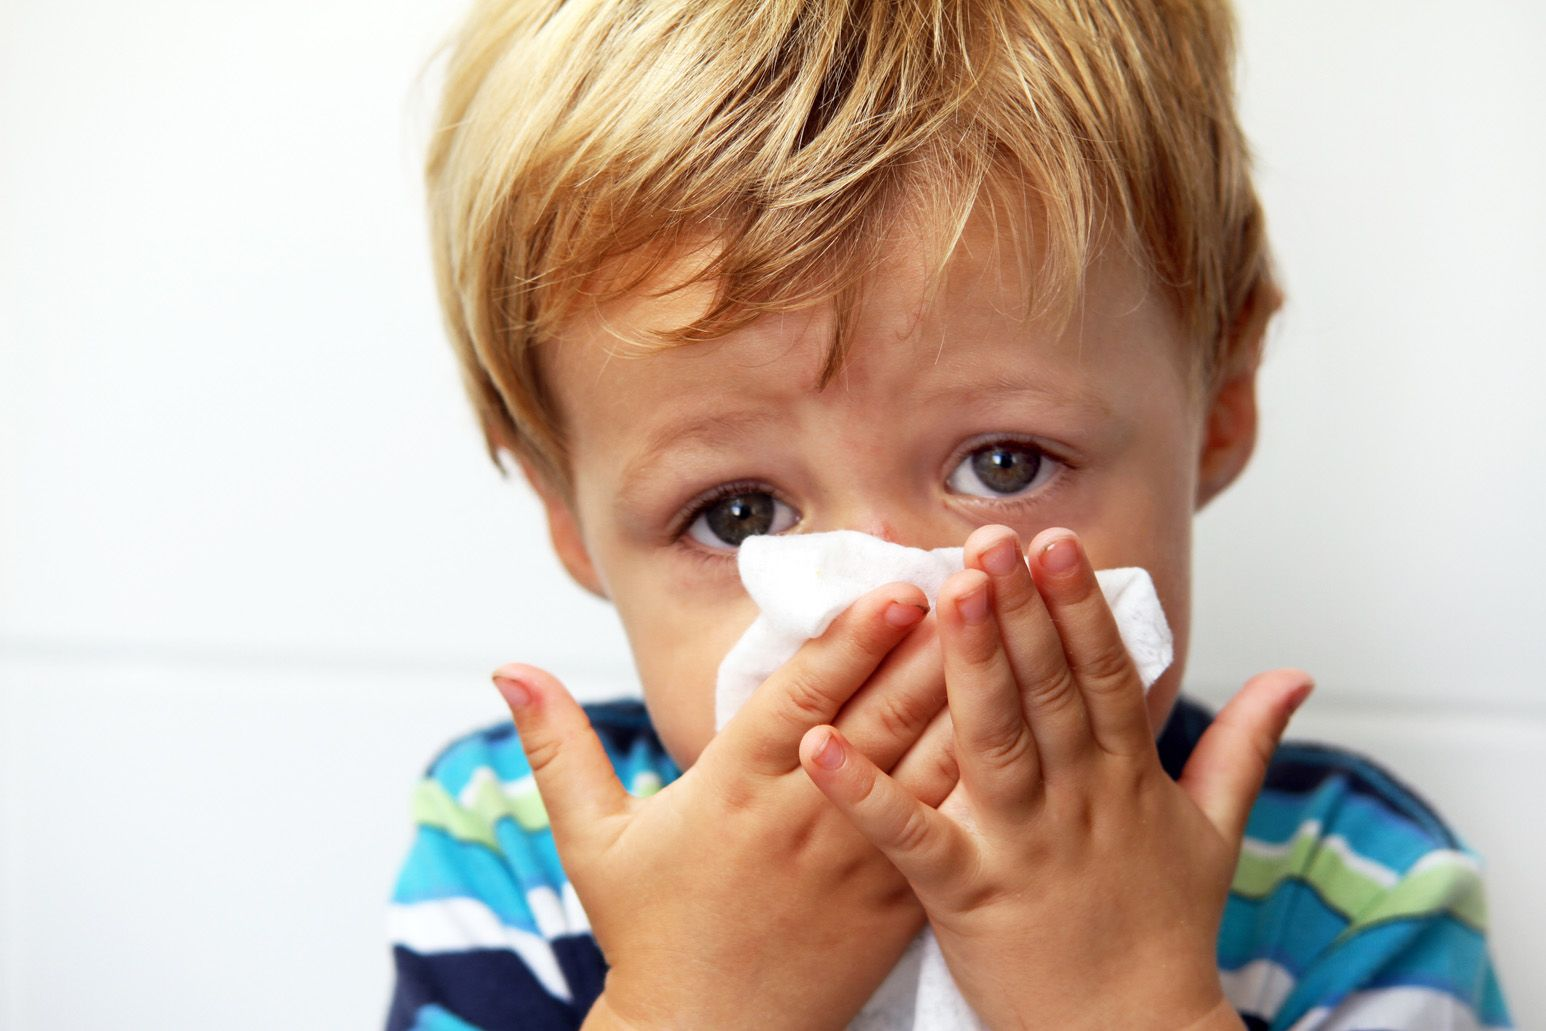 A child blows his nose. Charles Schleien, MD, tells how you can safeguard against the adenovirus that is spreading across the East Coast.